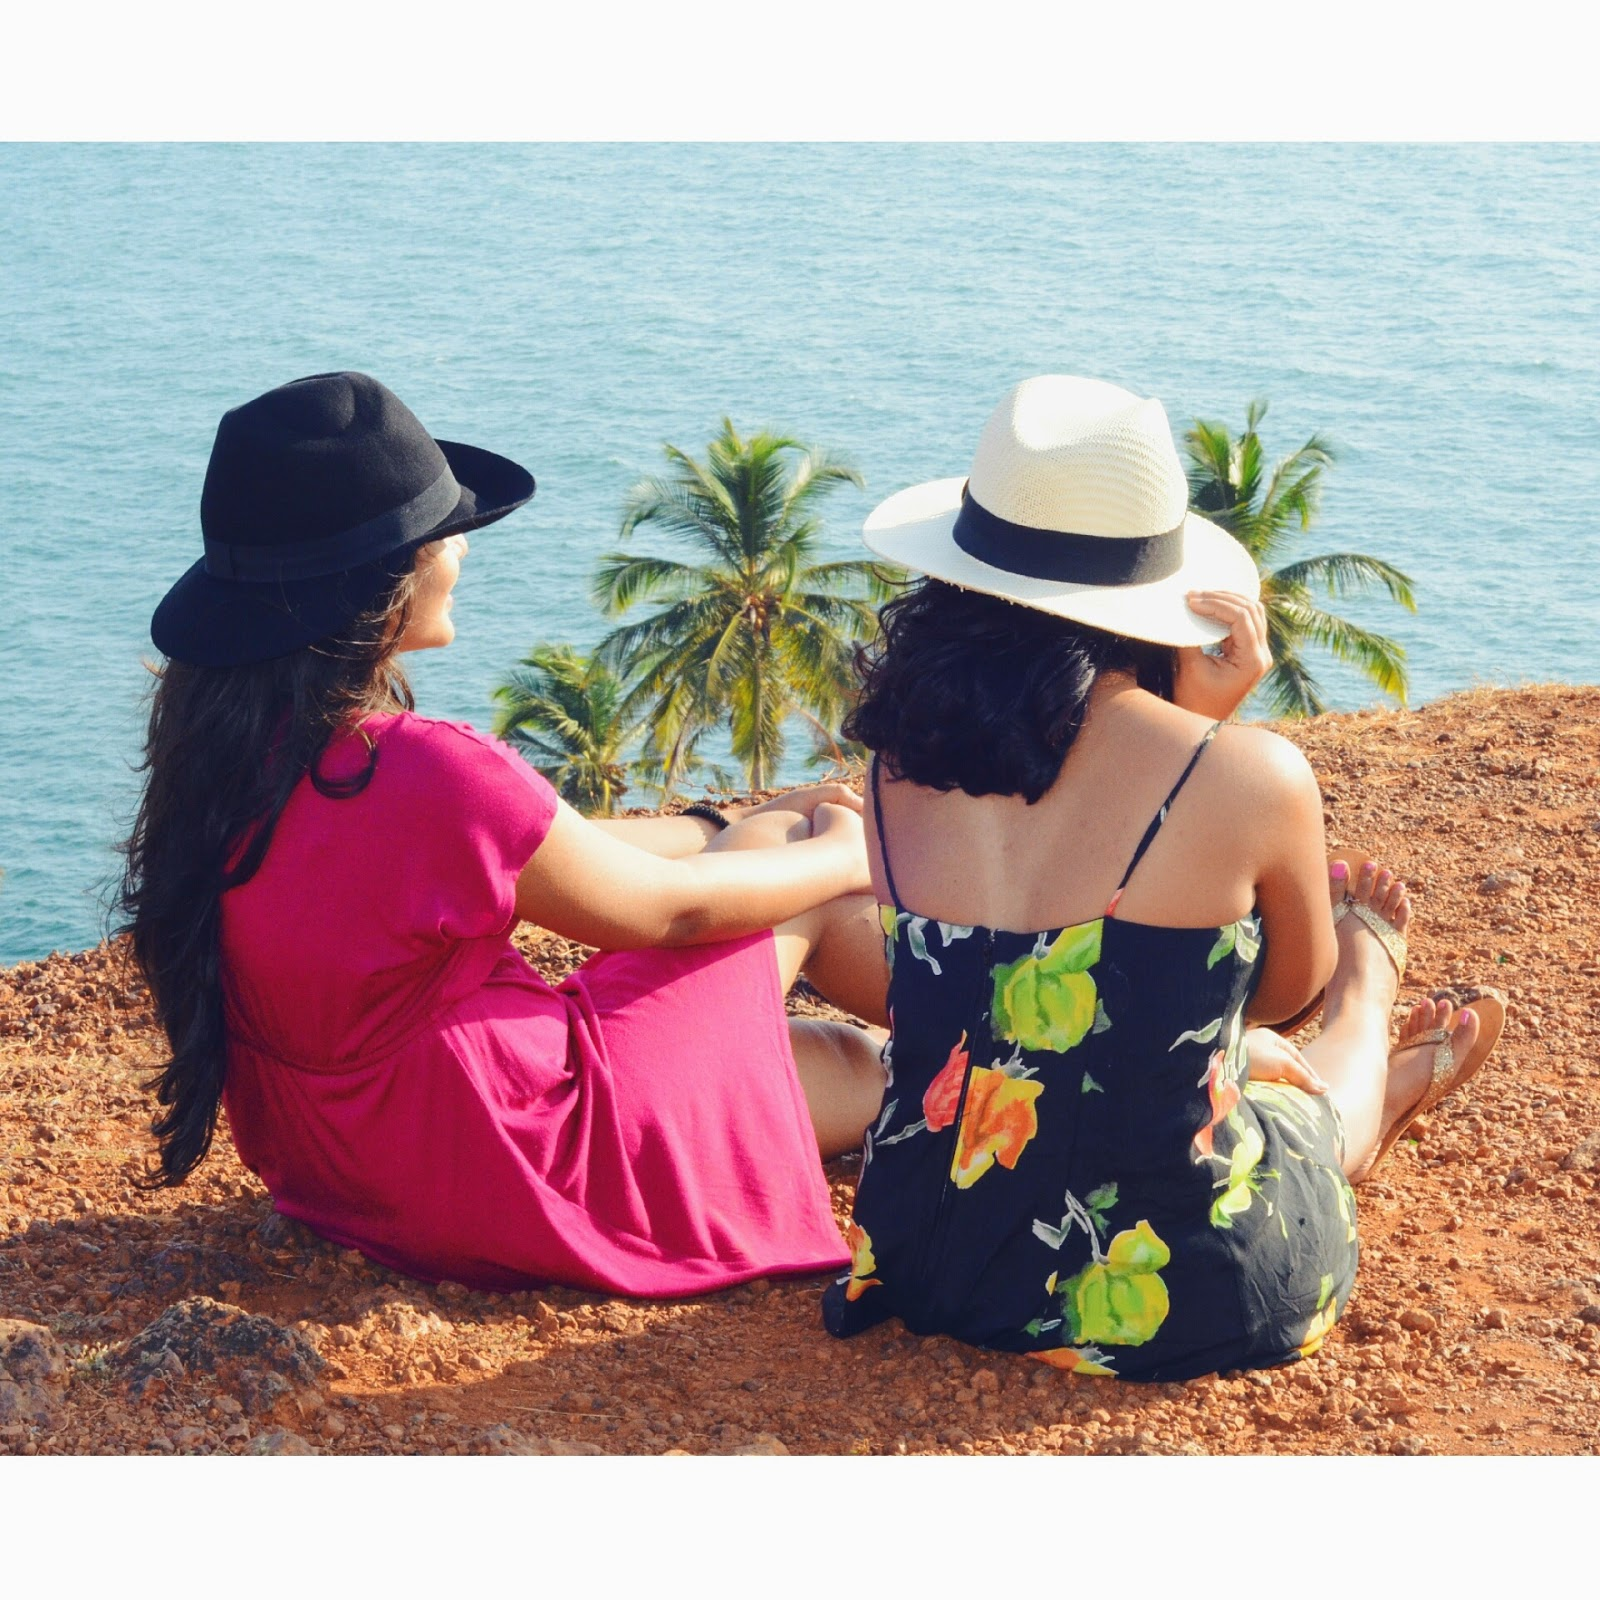 girls, hats, dresses, sunset, cliff, scenery, water, sunshine, outfit, lookbook, summer, goa